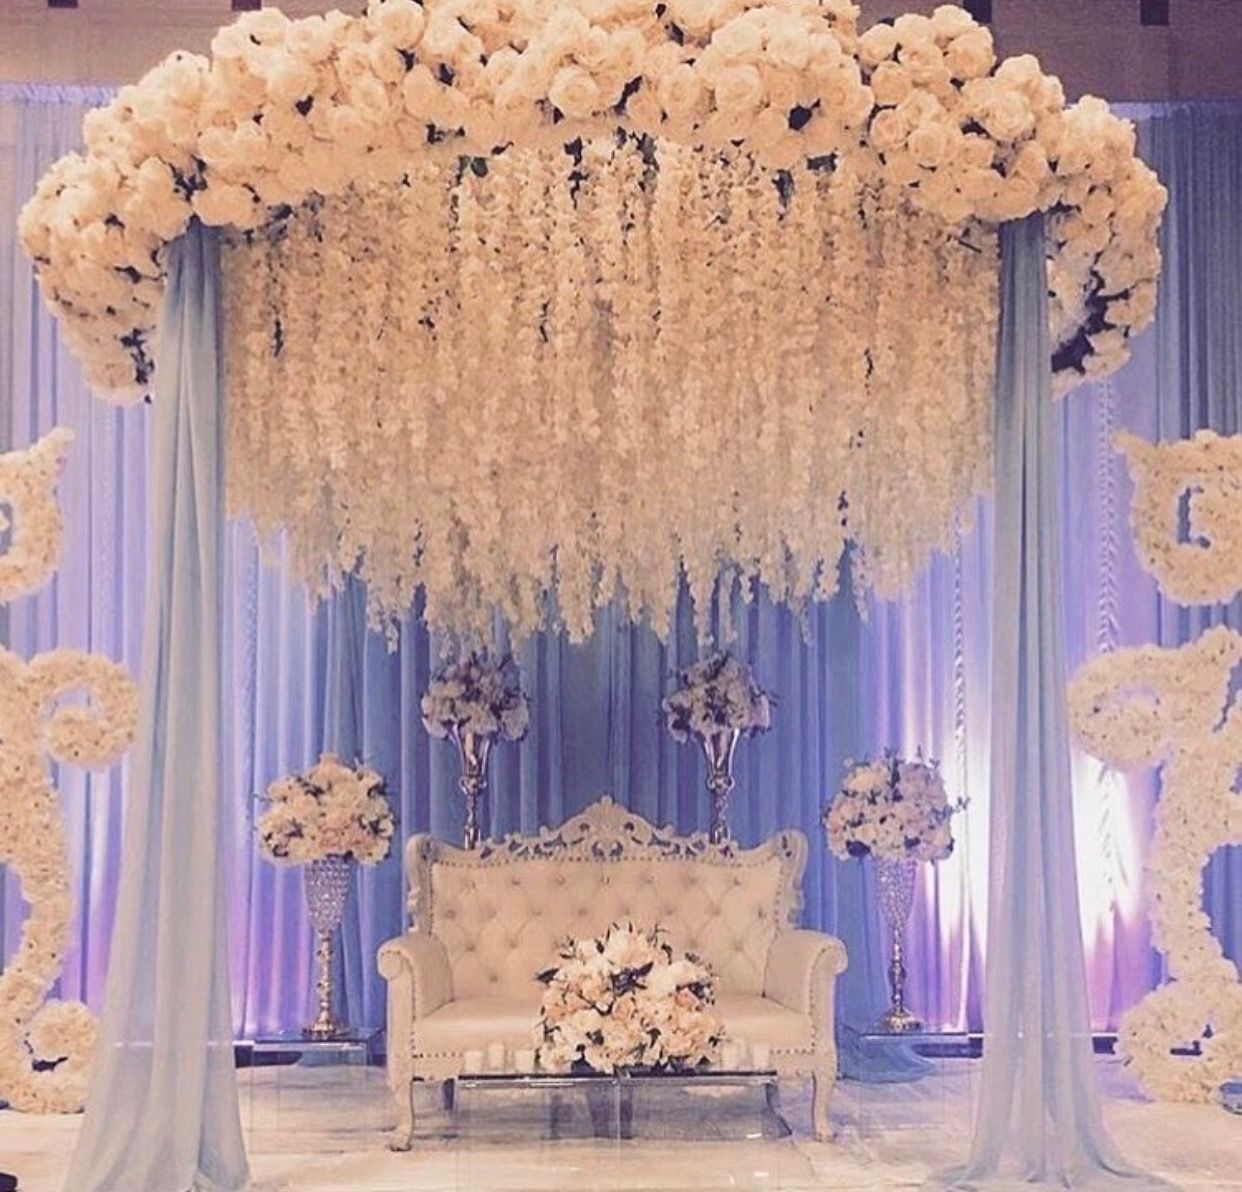 Wedding decoration stage ideas  Instagram  Wedding decor  Pinterest  Instagram Wedding and Weddings